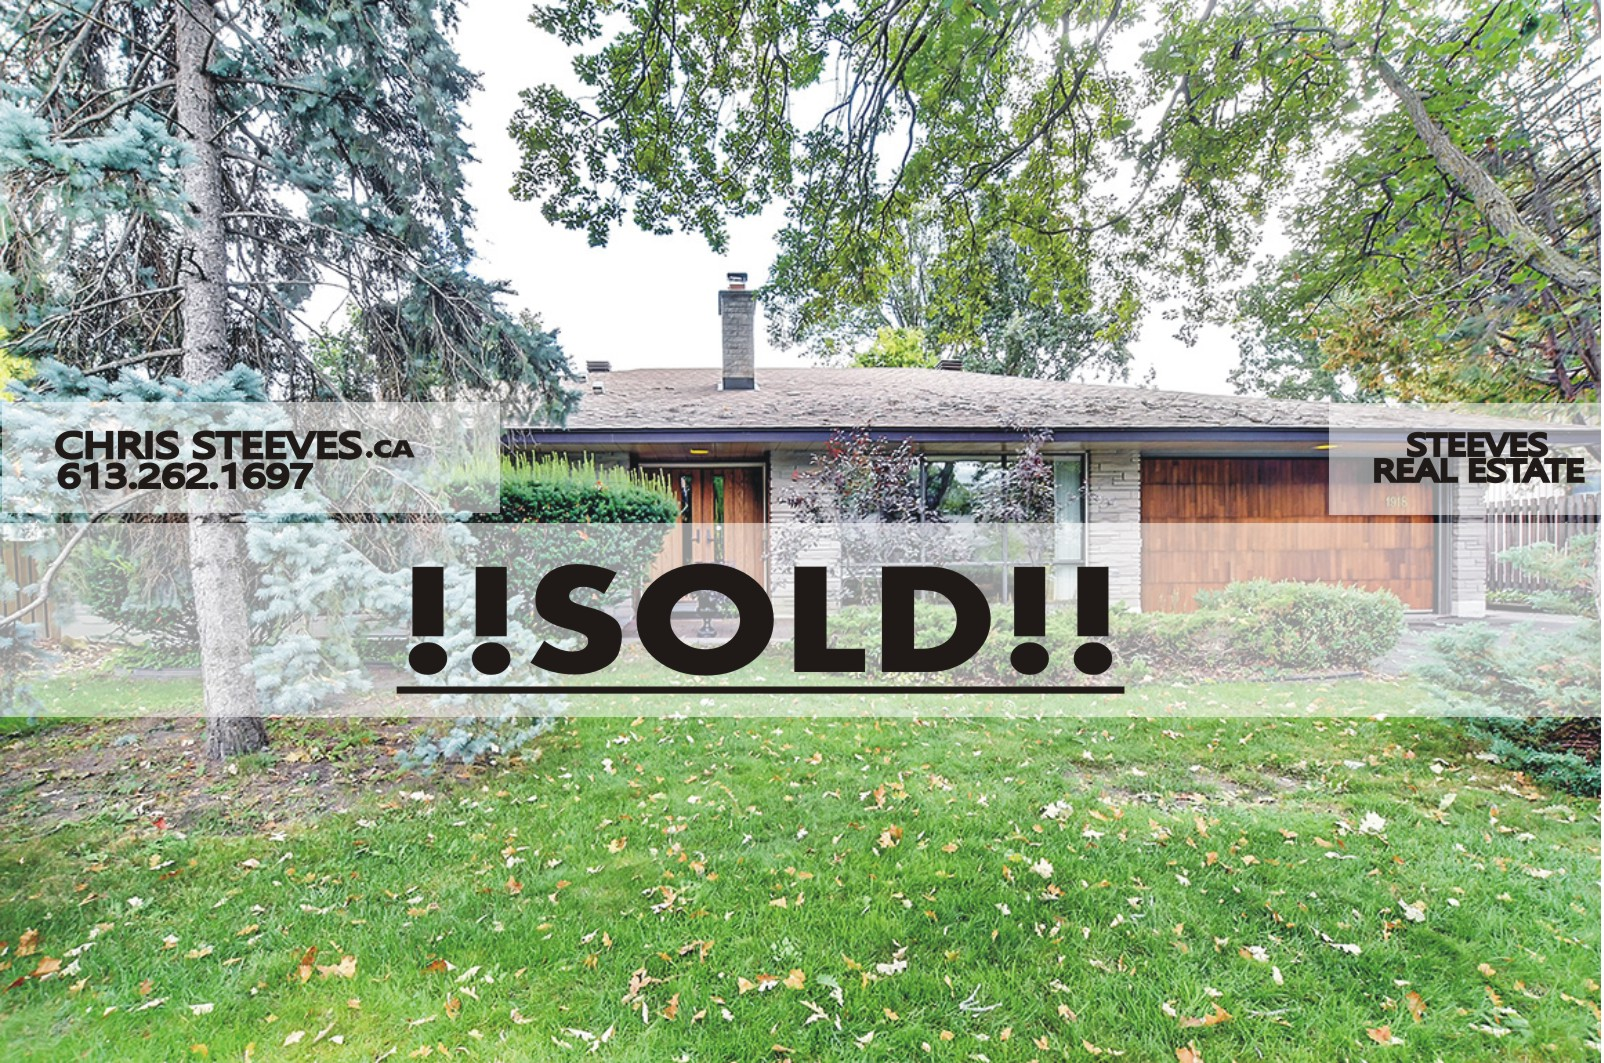 **SOLD** – 1918 GARFIELD AV – BUNGALOW IN BRAEMAR PARK